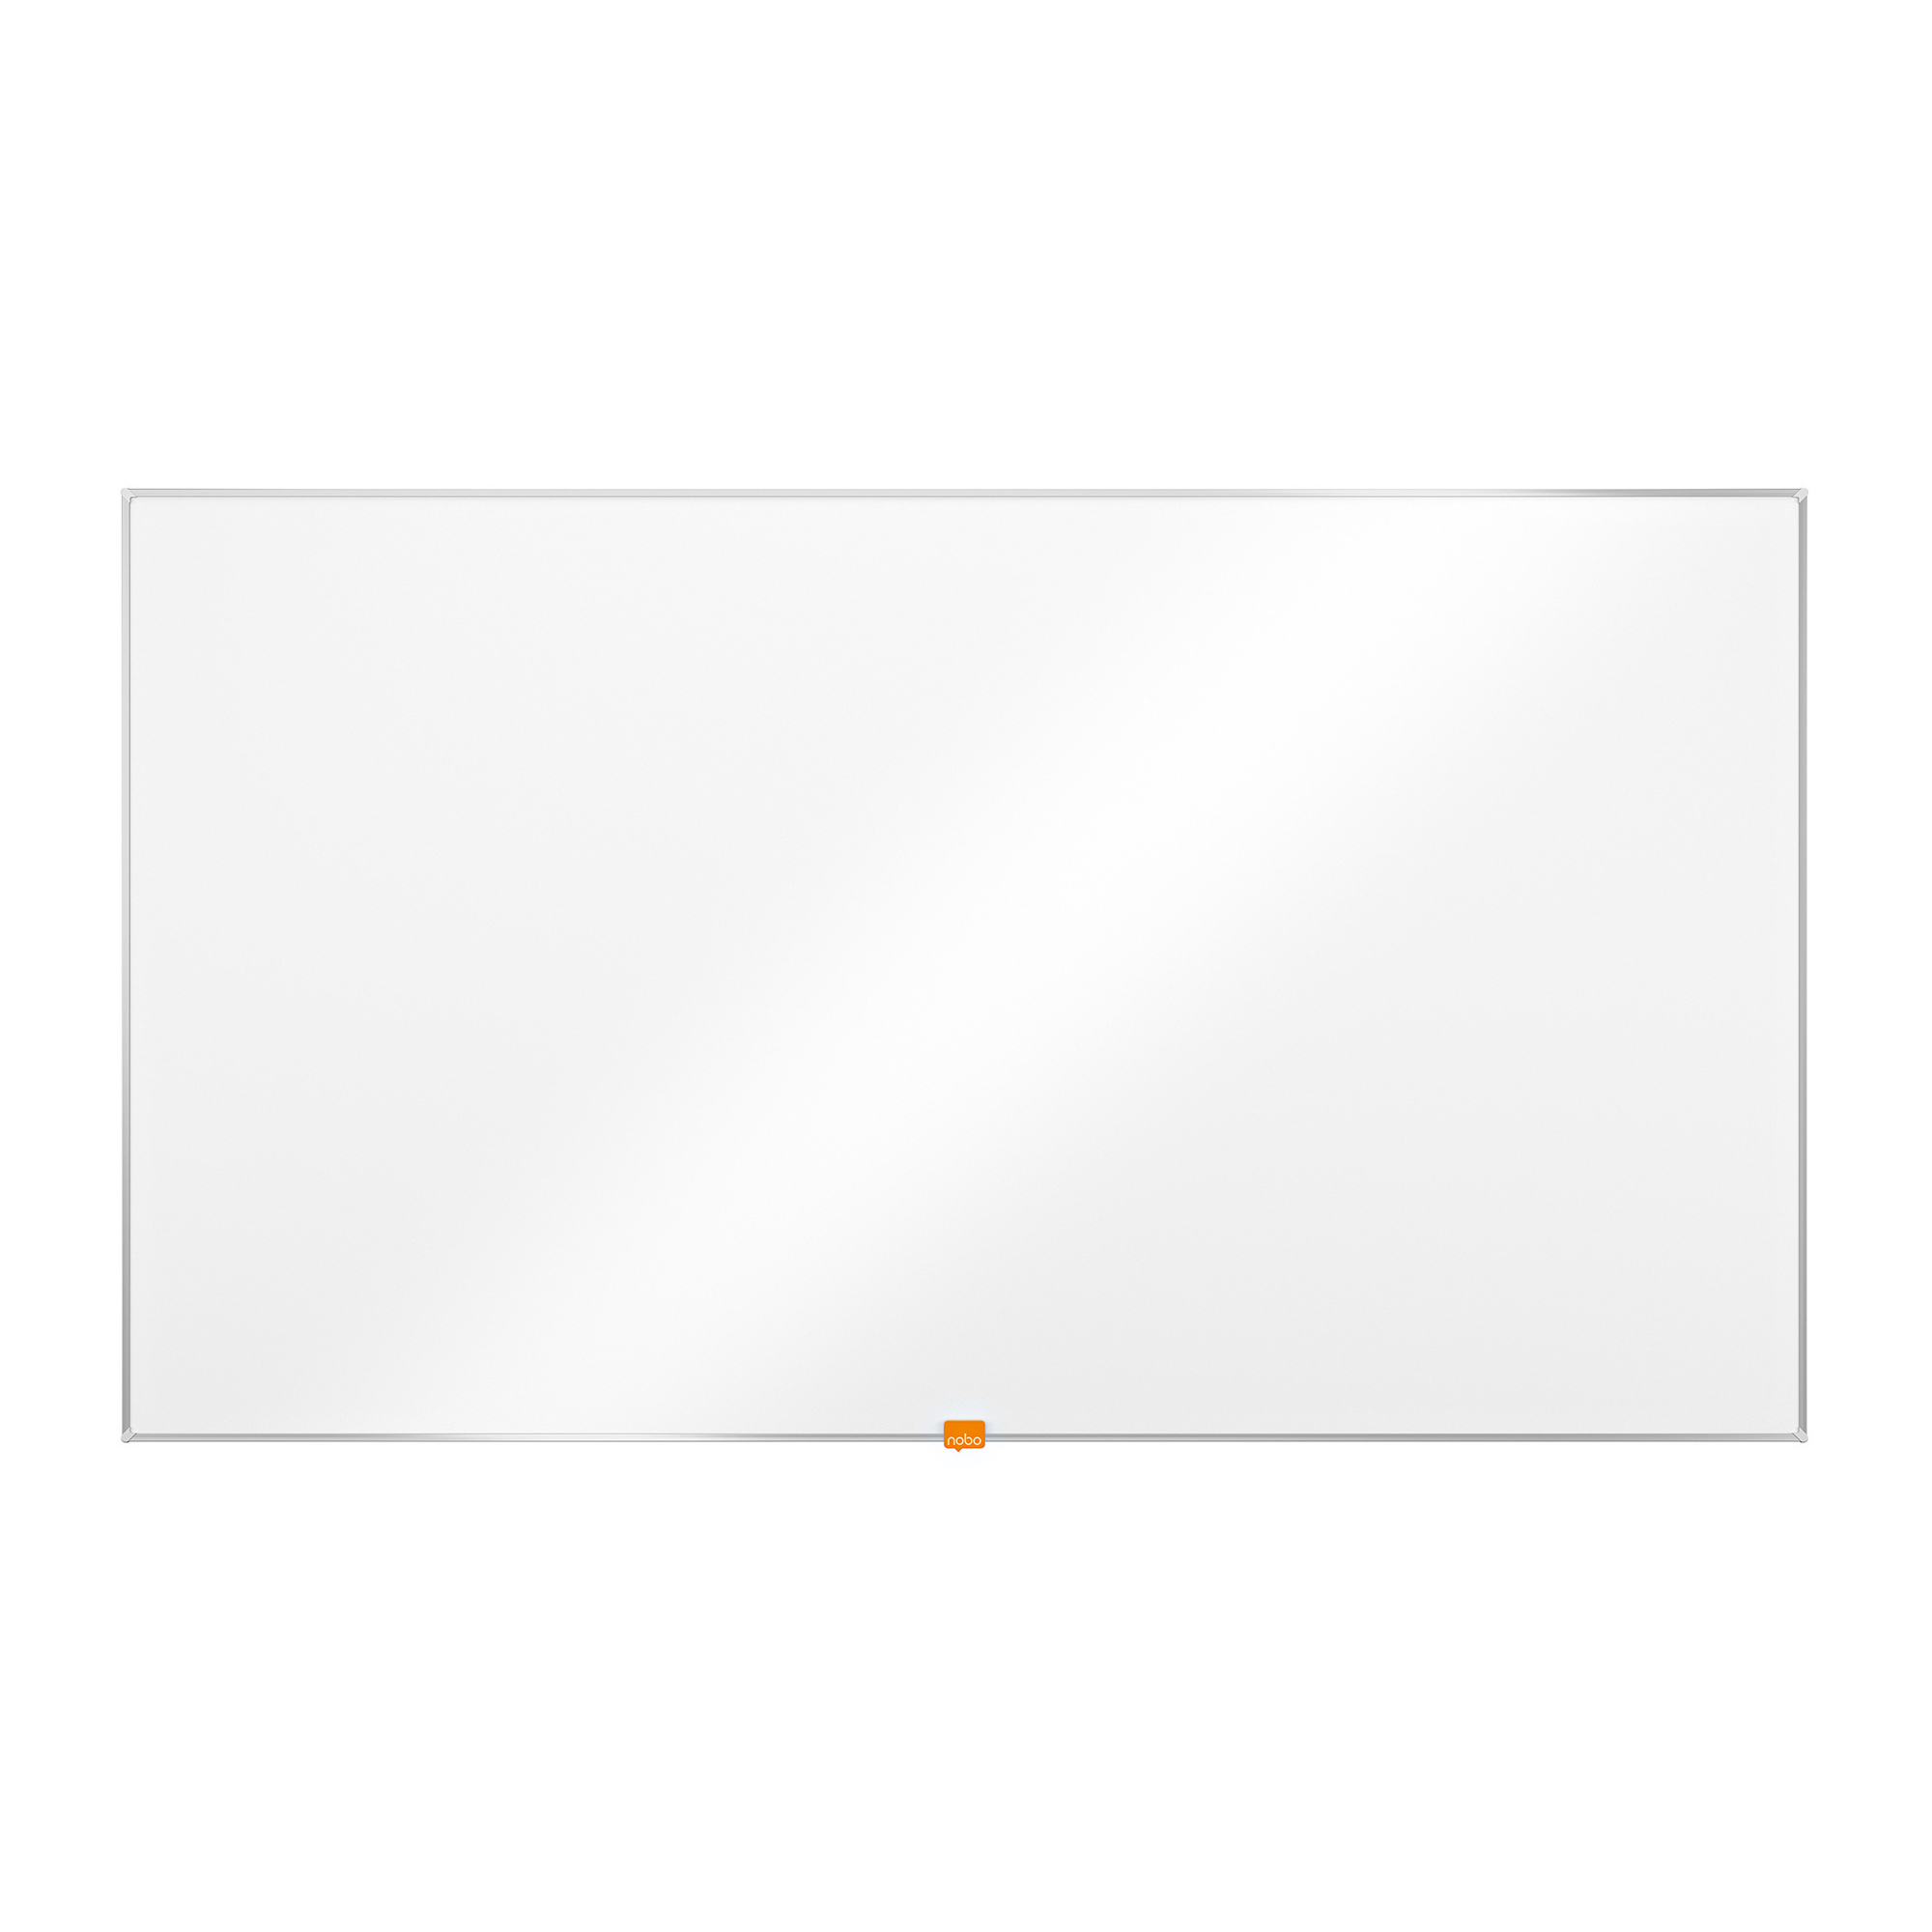 Nobo Widescreen 32inch Whiteboard Enamel Magnetic W721xH411mm Ref 1905301 [REDEMPTION] Jul-Sep19